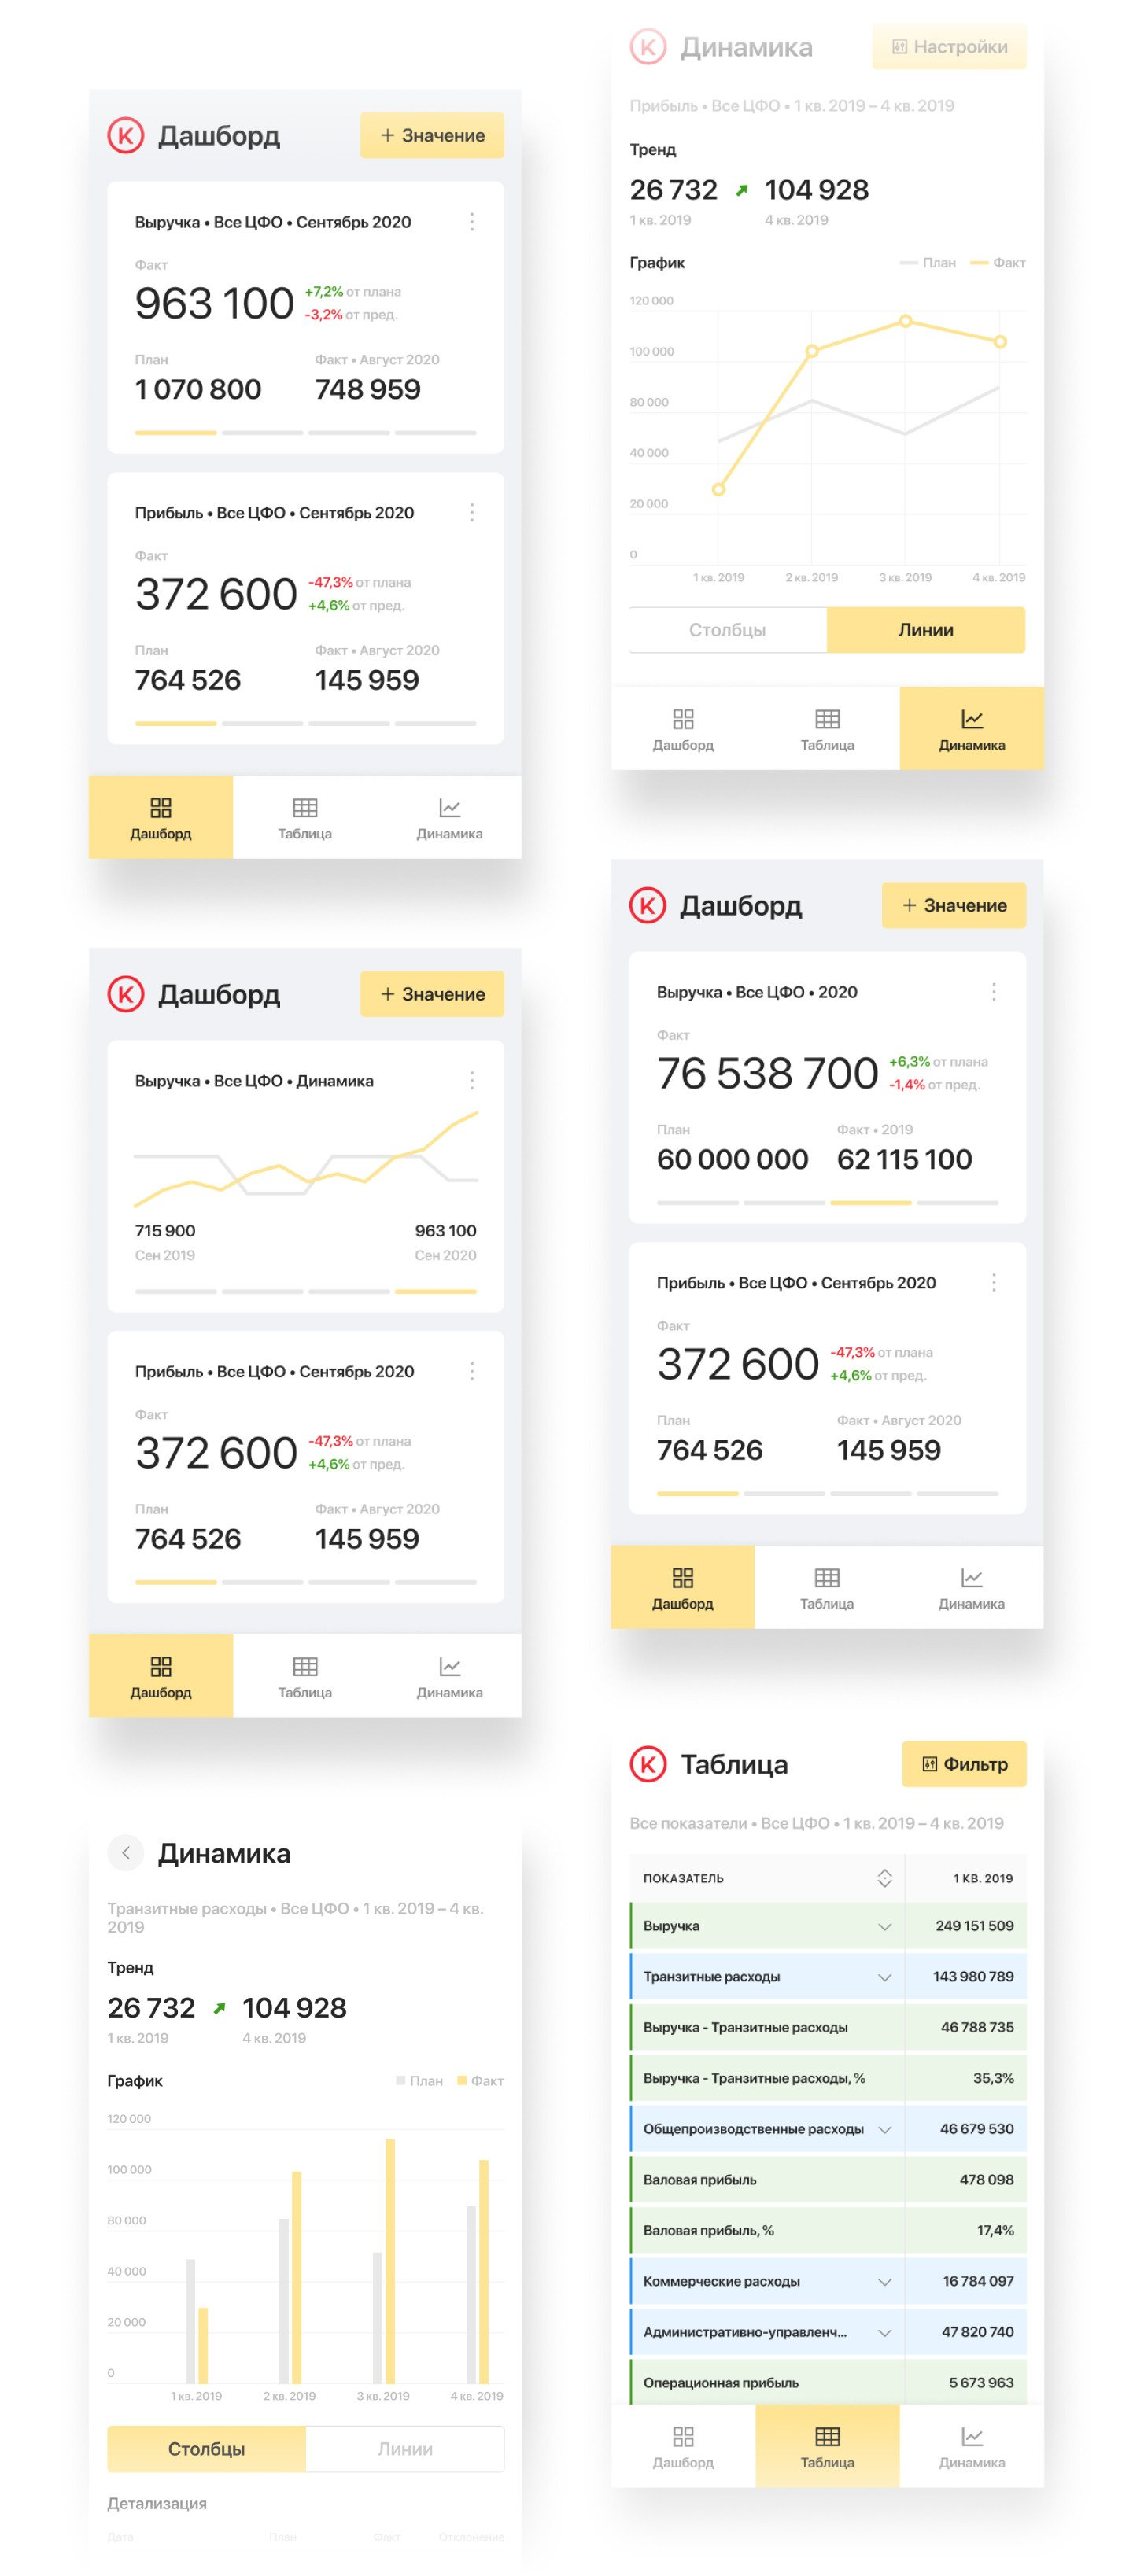 Design of mobile version of the financial report